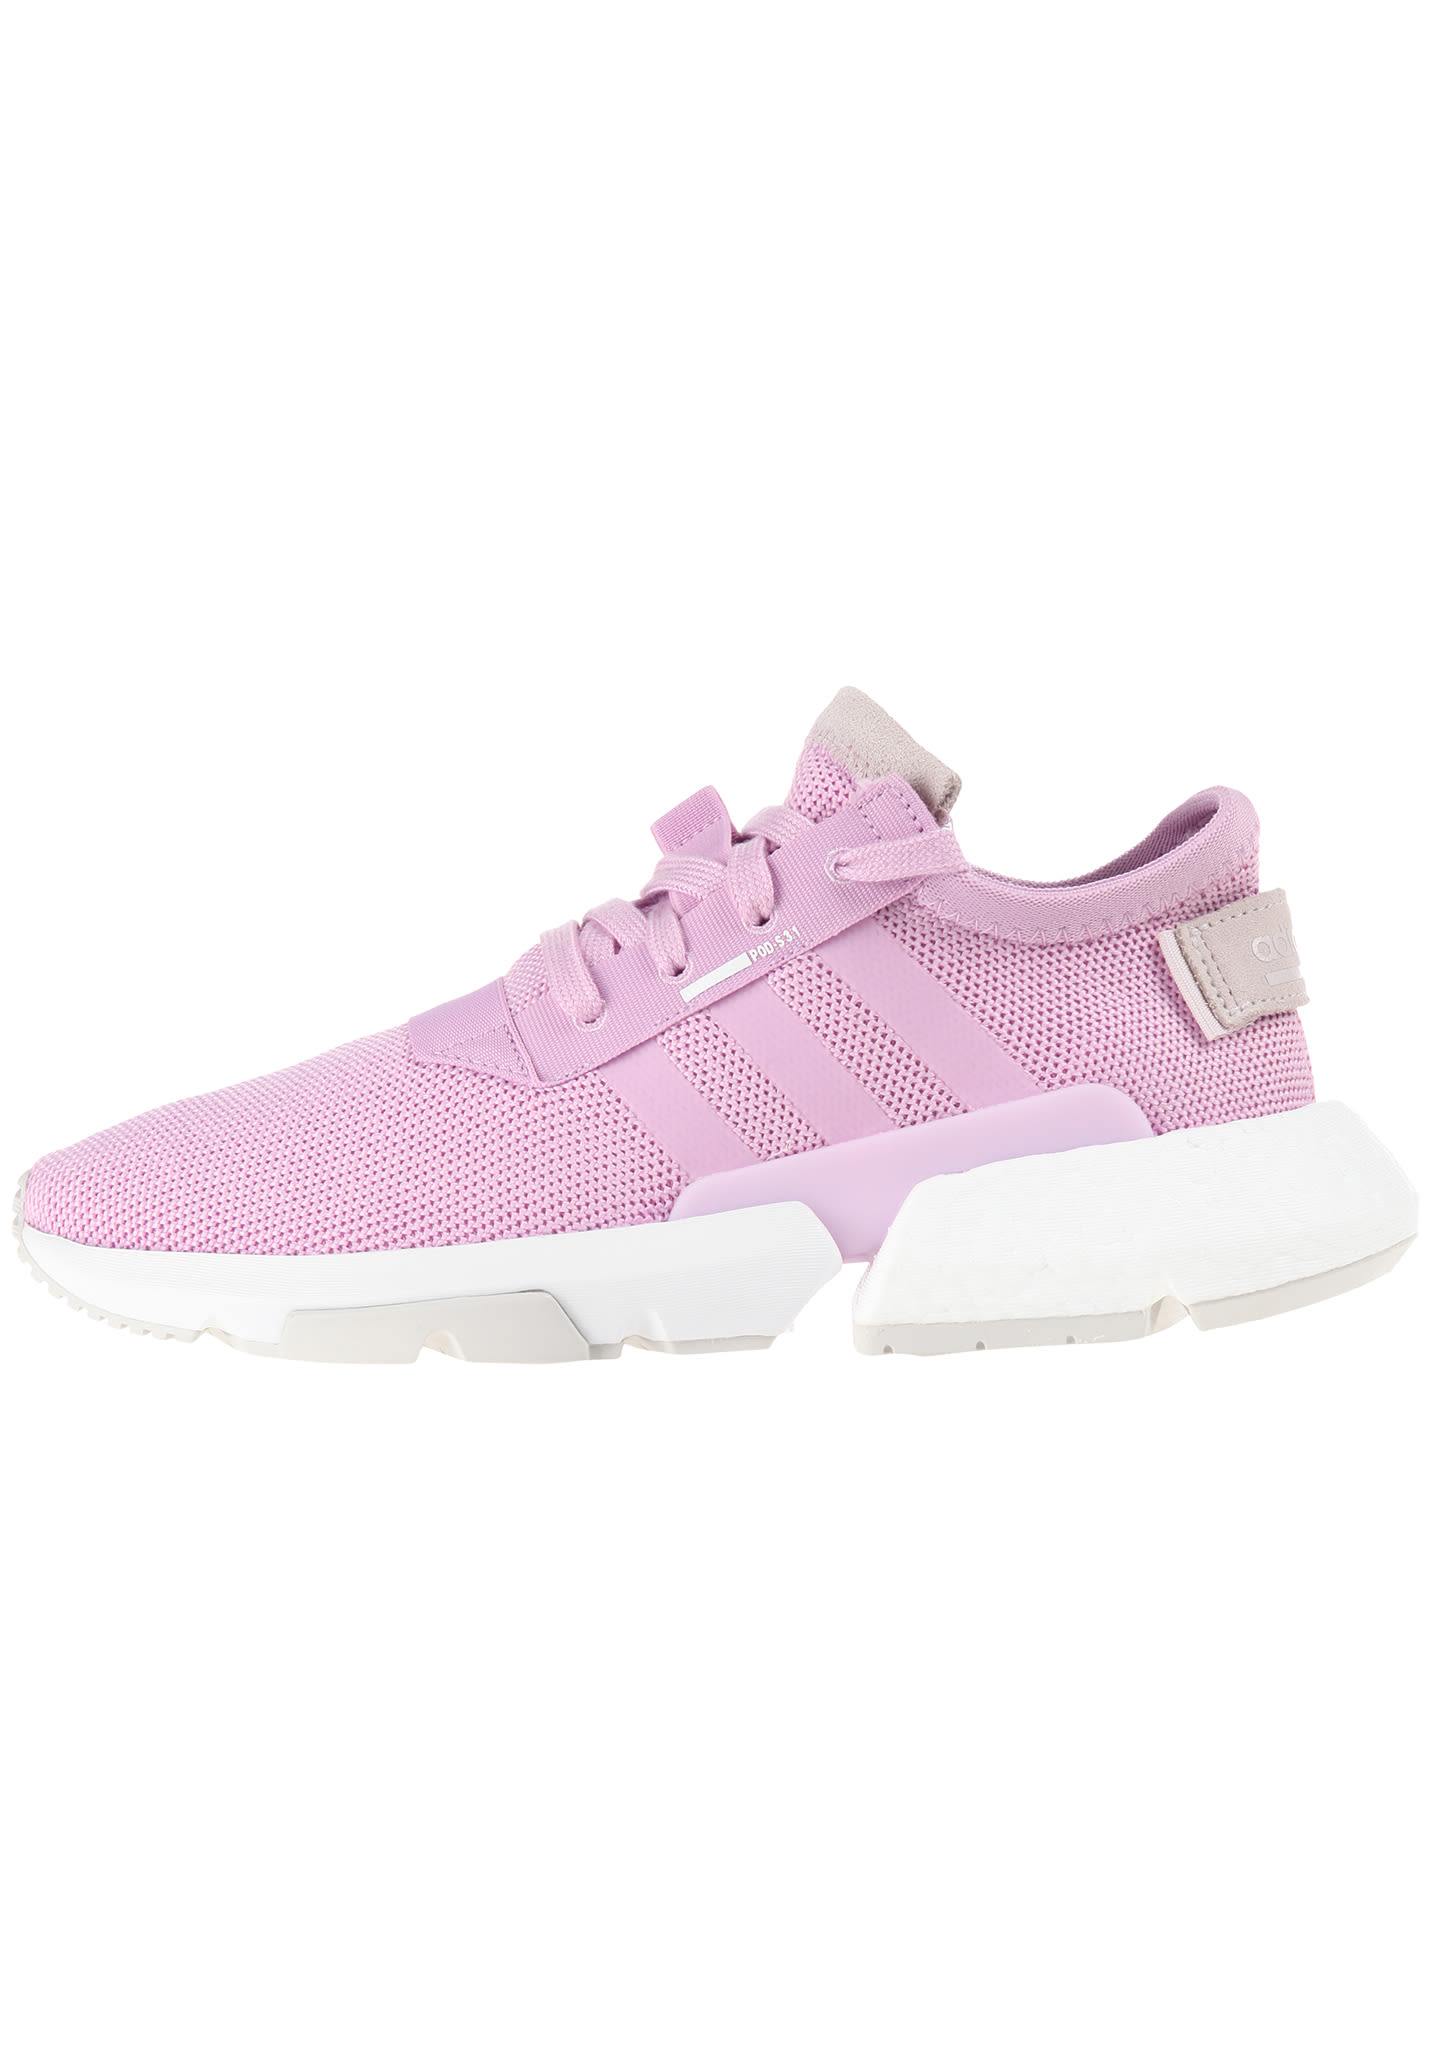 amazon retail prices outlet boutique ADIDAS ORIGINALS POD-S3.1 - Sneakers for Women - Pink